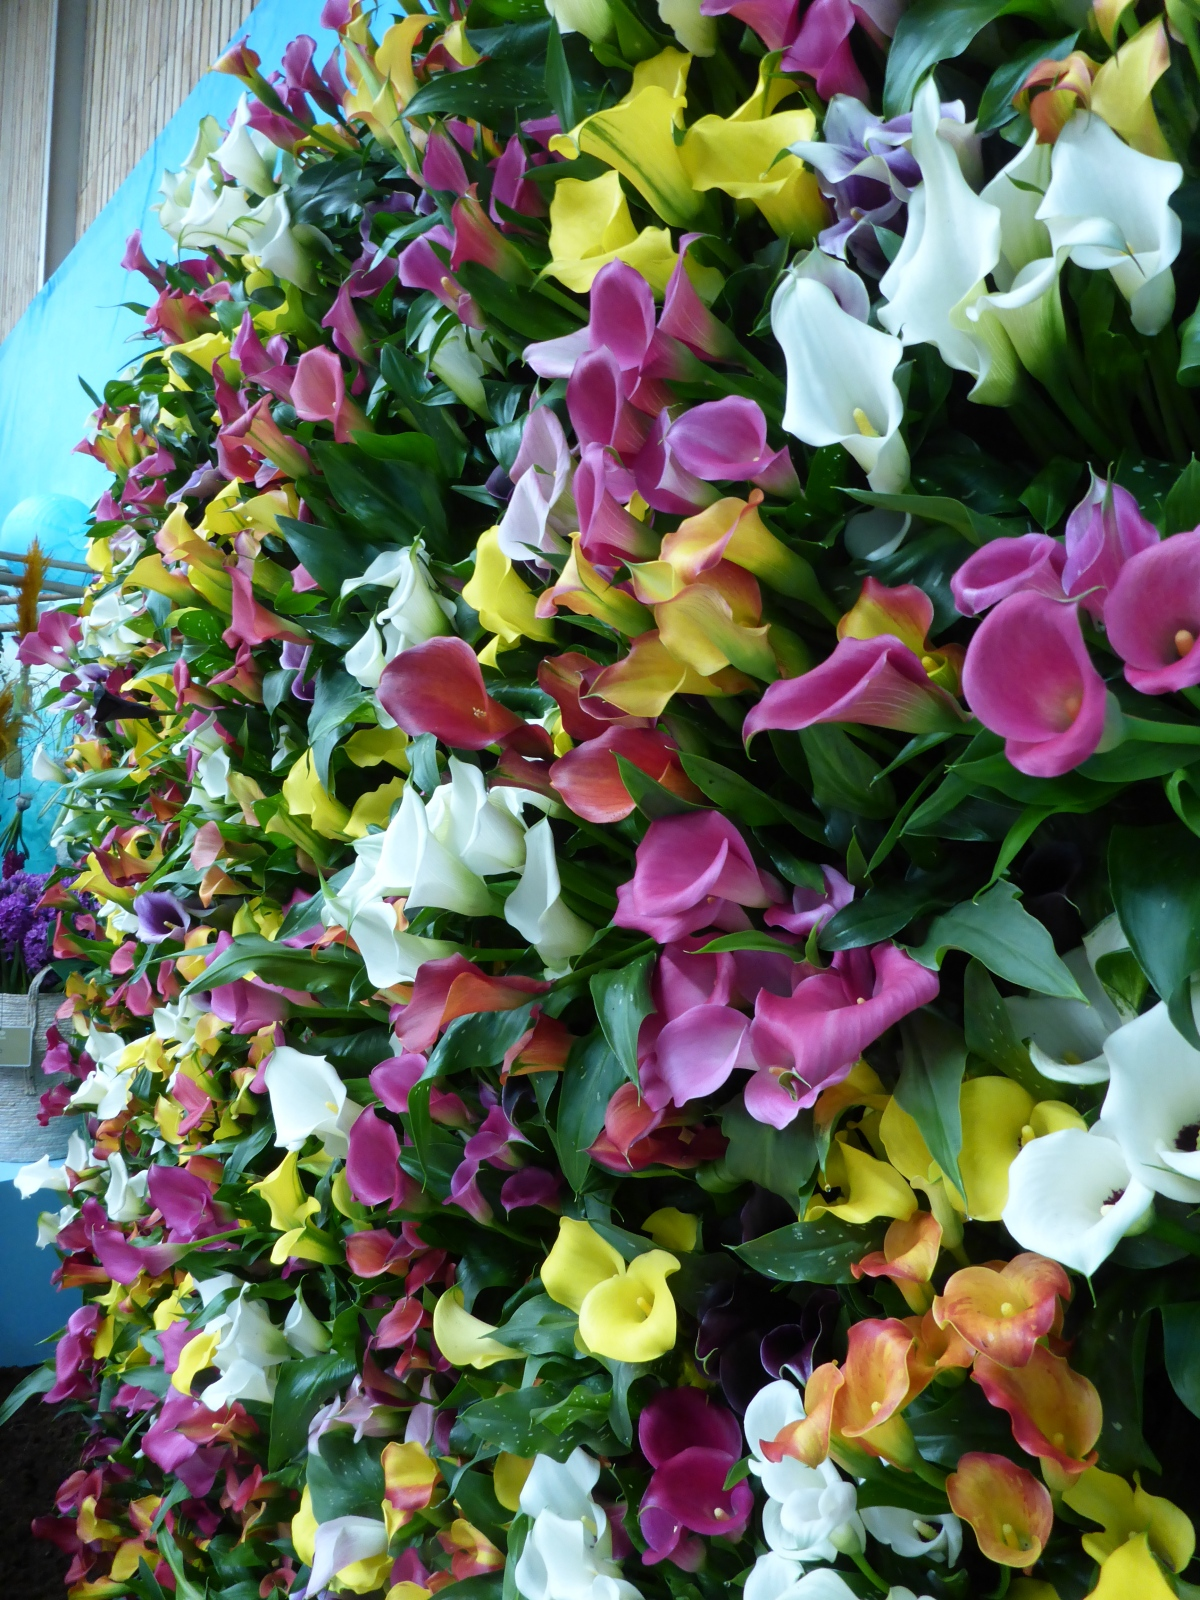 A wall of lilies